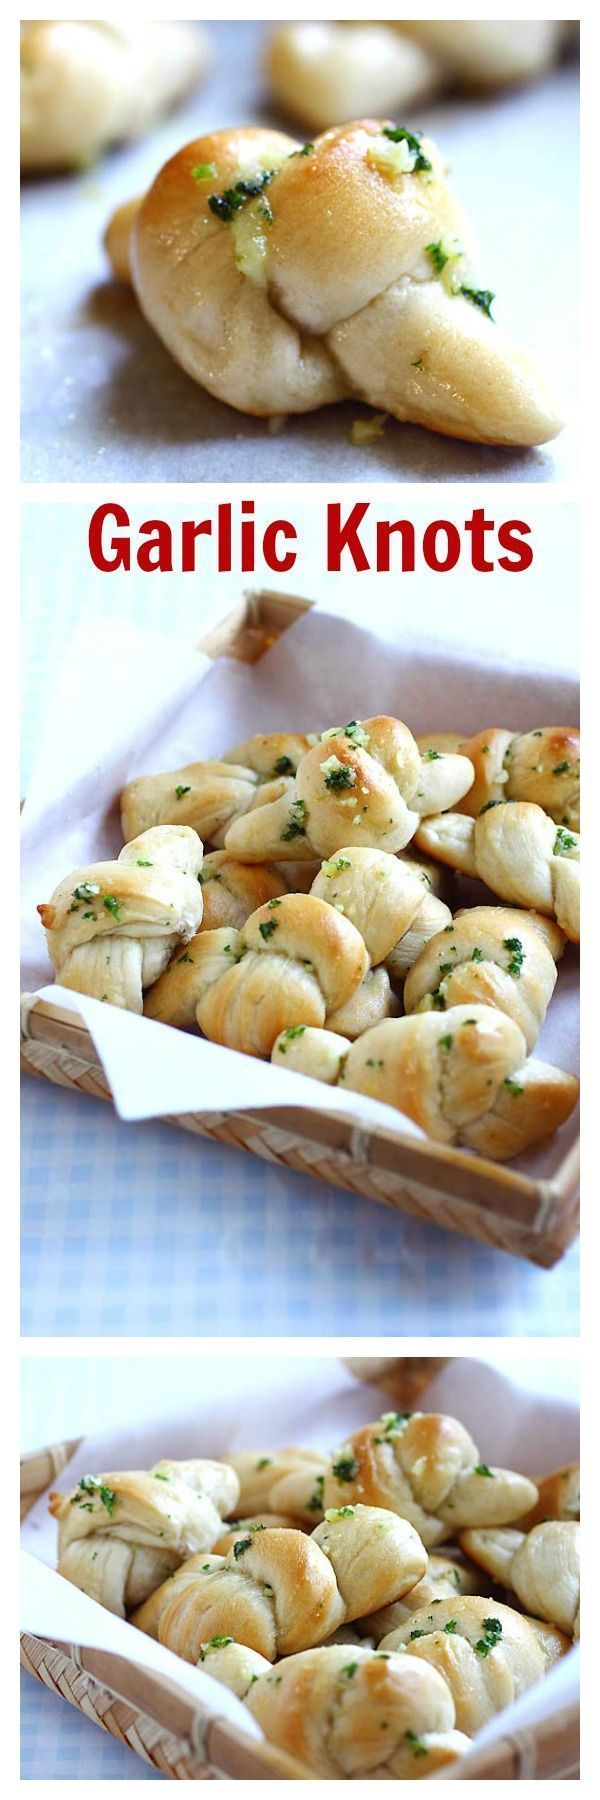 Garlic knots using a store-bought pizza dough and garlic butter. Tasty and easy side dish that everyone will beg for more   rasamalaysia.com